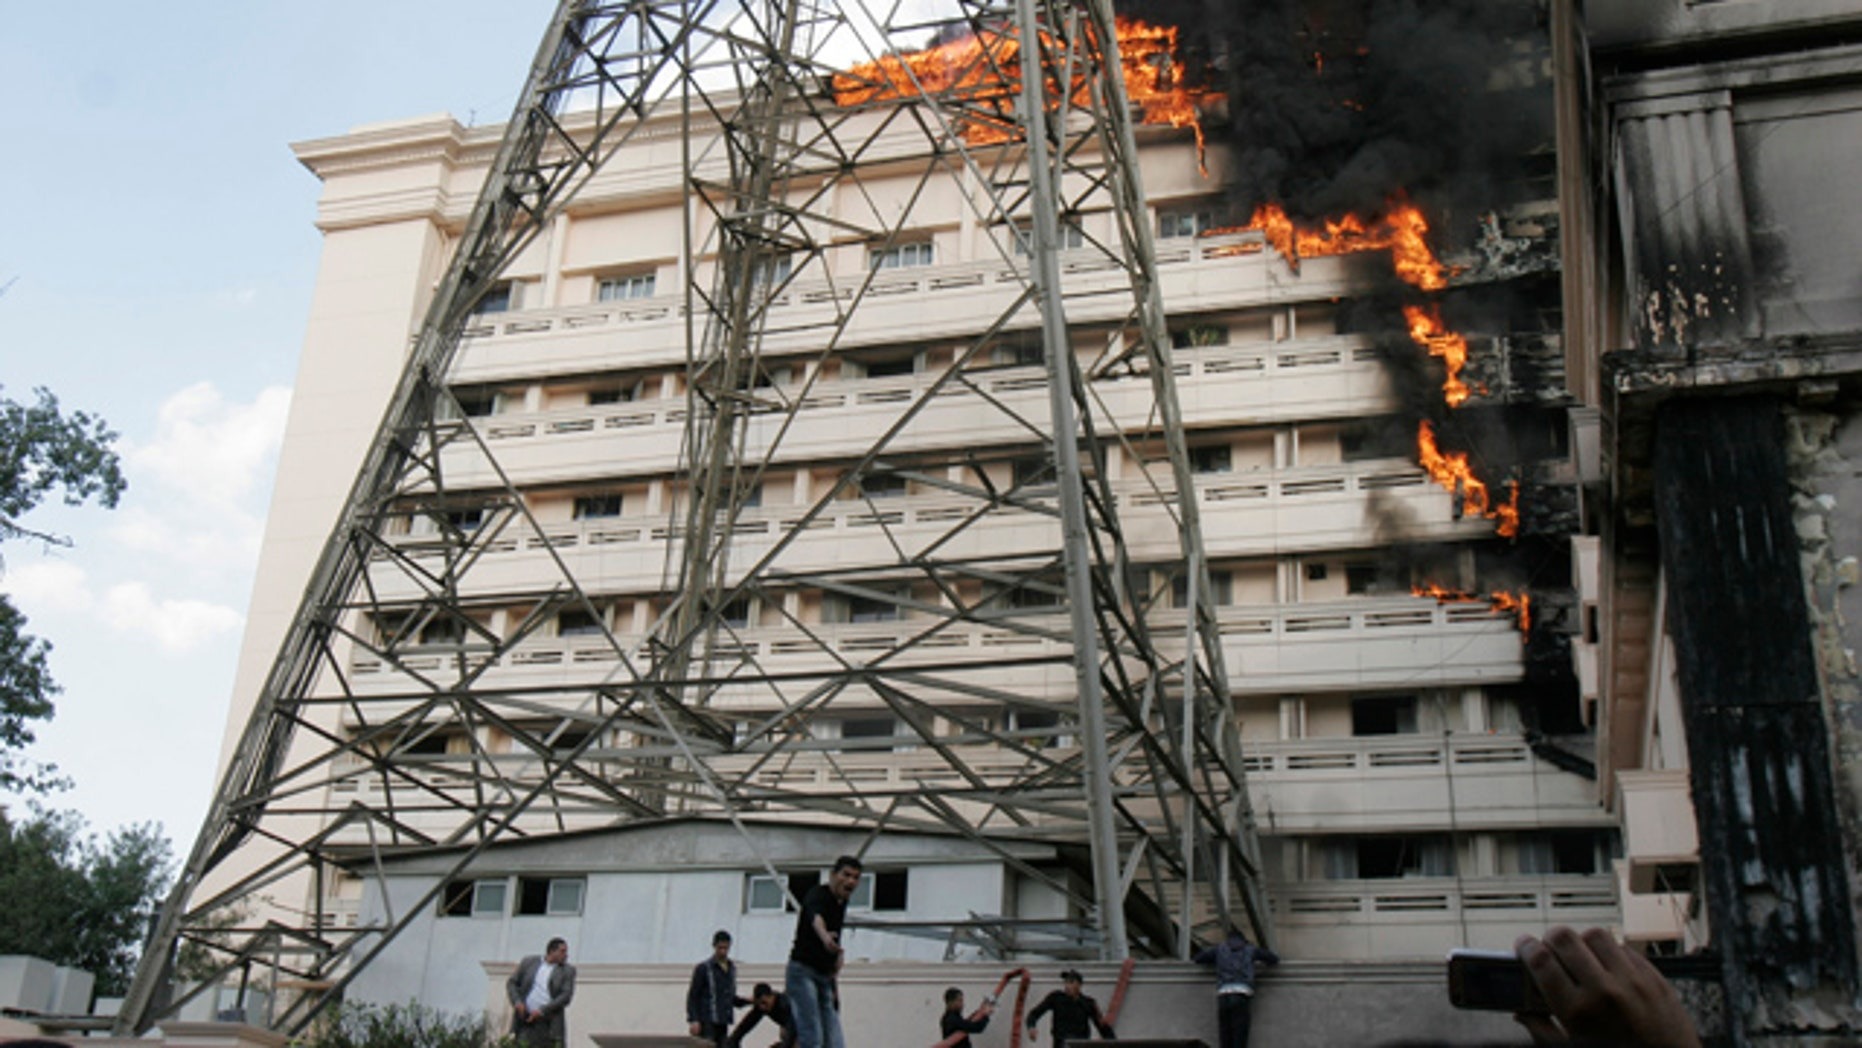 March 22: Flames engulf part of the Interior Ministry complex in Cairo, Egypt.